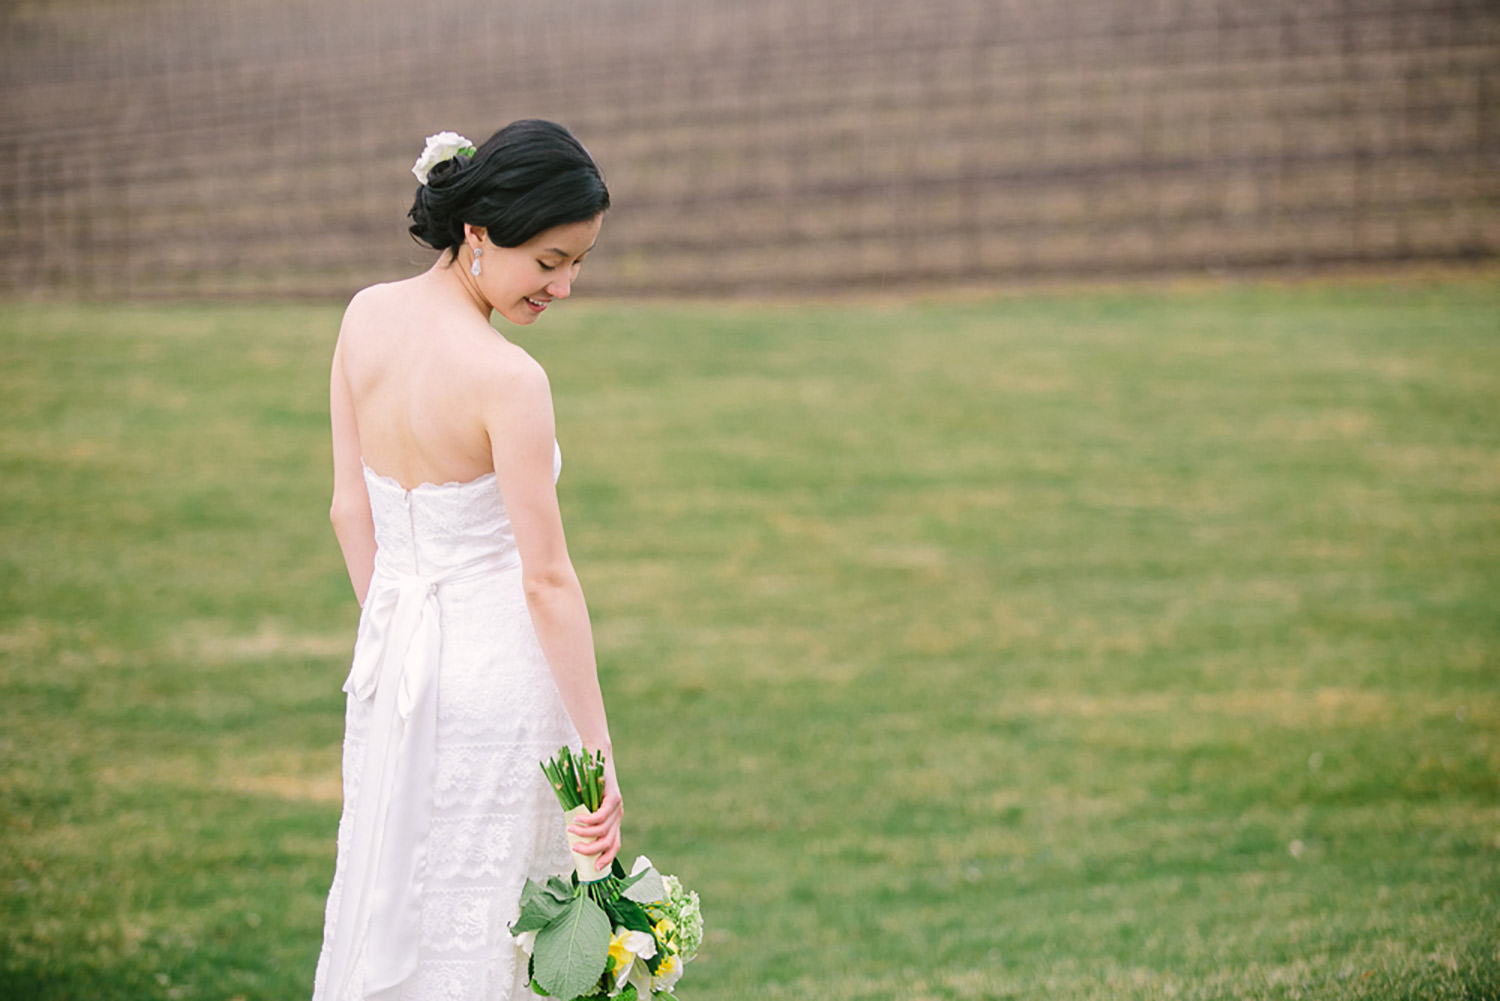 Vineland-Estates-Wedding-Vineyard-Bride-Photo-By-Tamara-Lockwood-Photography-022.jpg